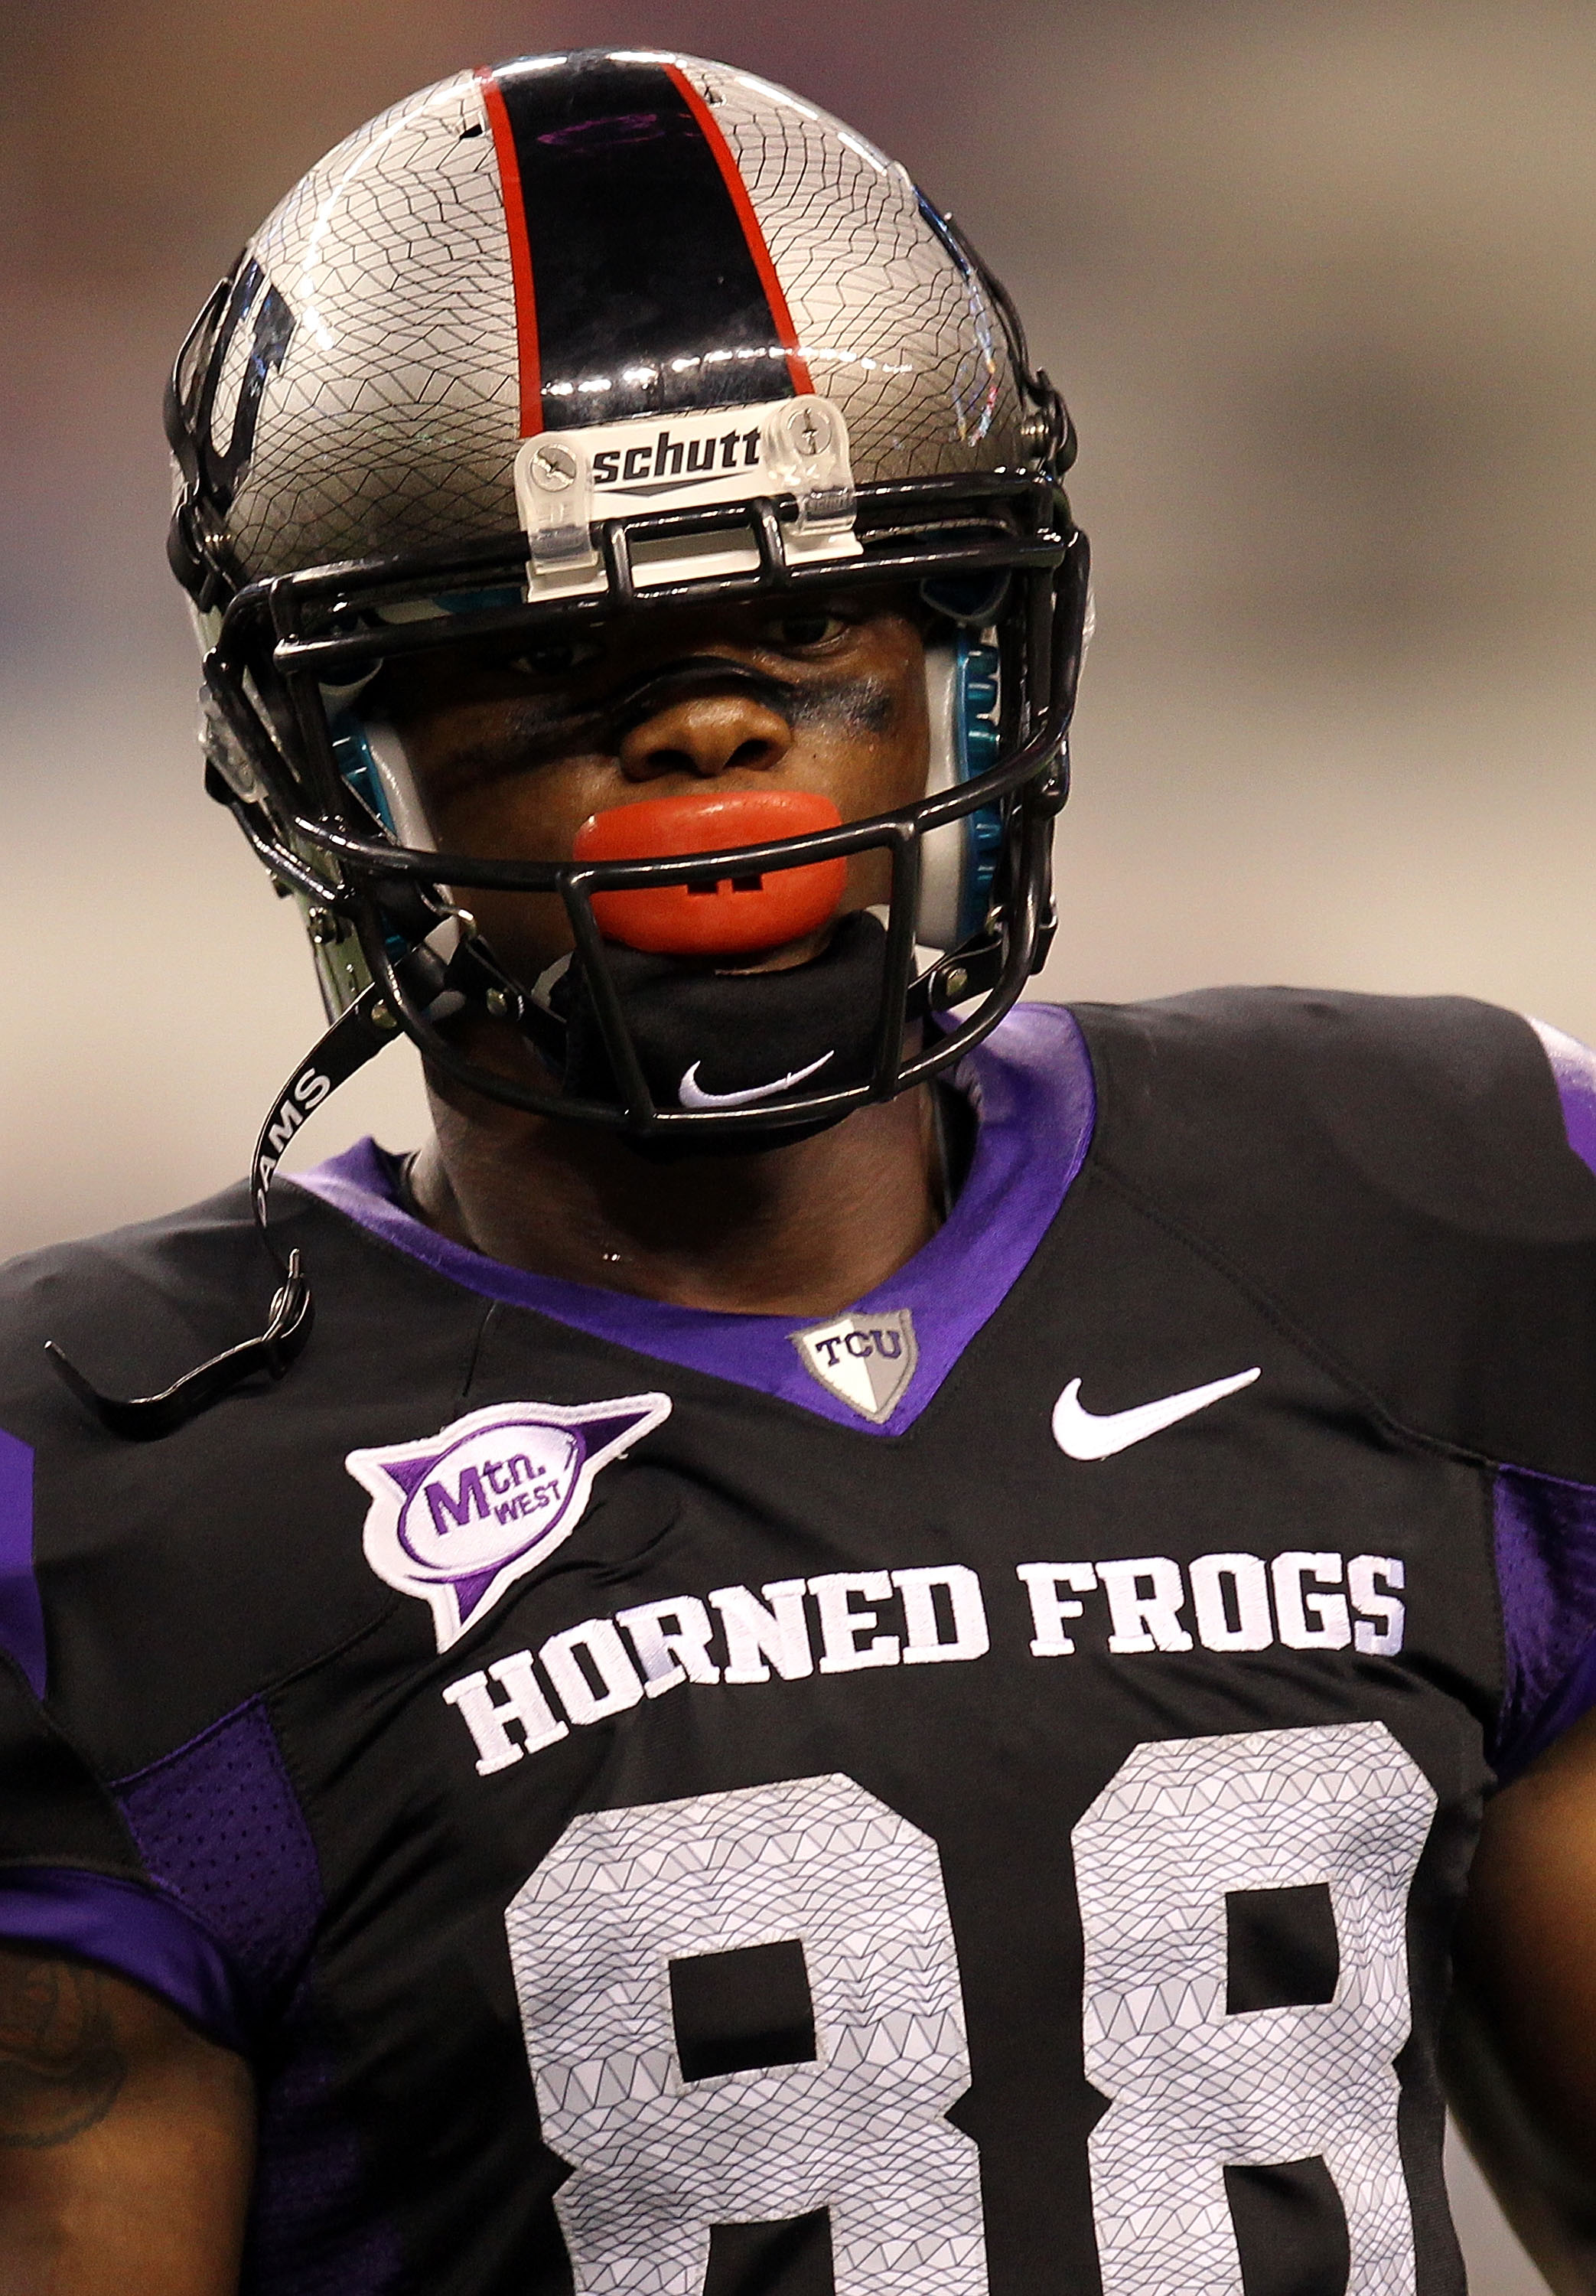 ARLINGTON, TX - SEPTEMBER 04:  Wide receiver Jimmy Young #88 of the TCU Horned Frogs at Cowboys Stadium on September 4, 2010 in Arlington, Texas.  (Photo by Ronald Martinez/Getty Images)